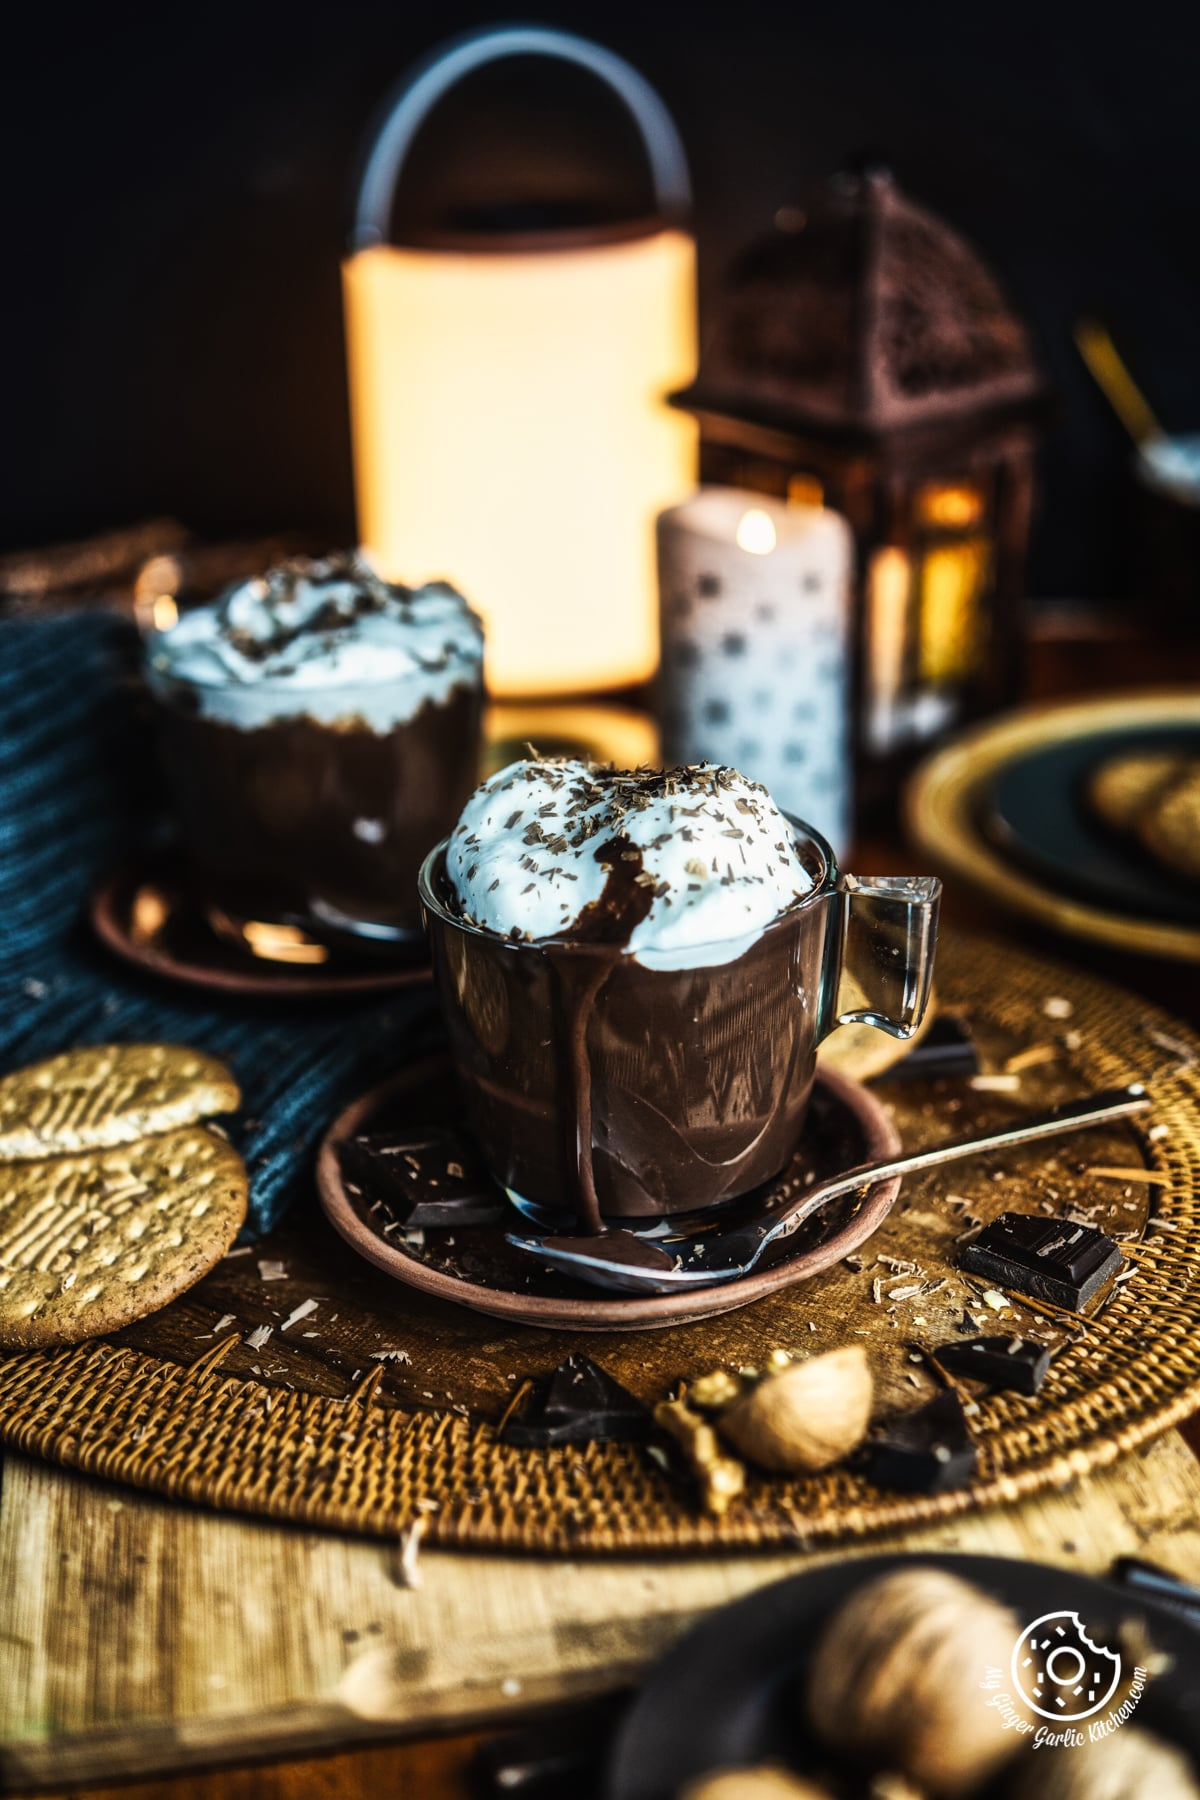 hot chocolate in a transparent cup